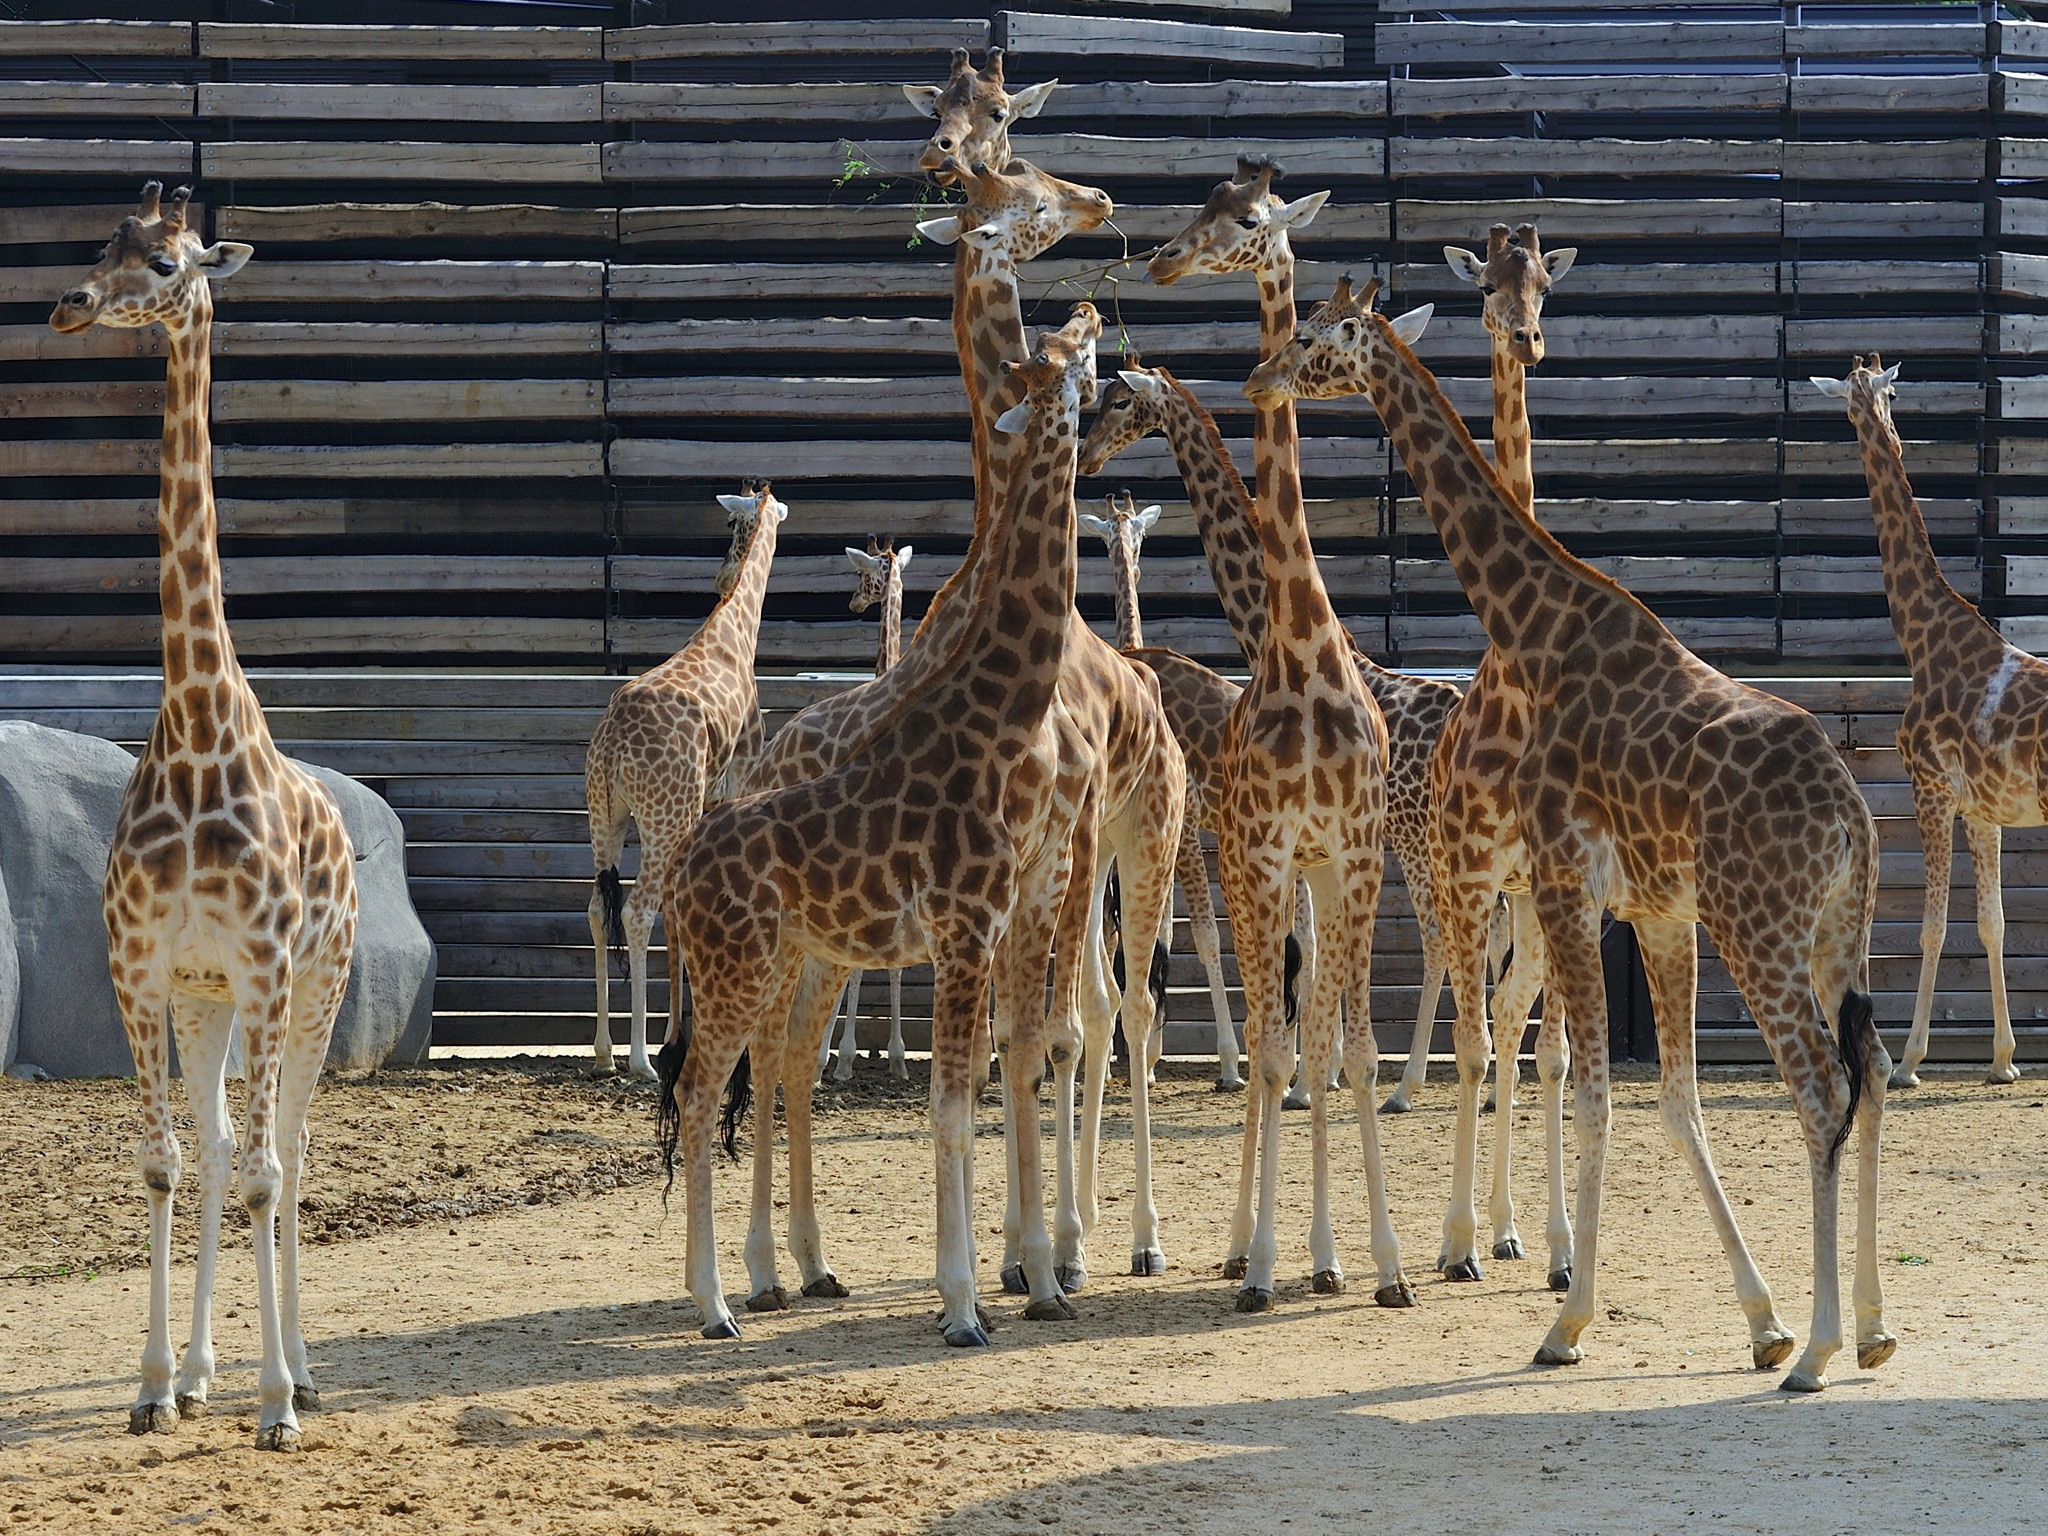 Giraffes at the zoo in the Bois de Vincennes